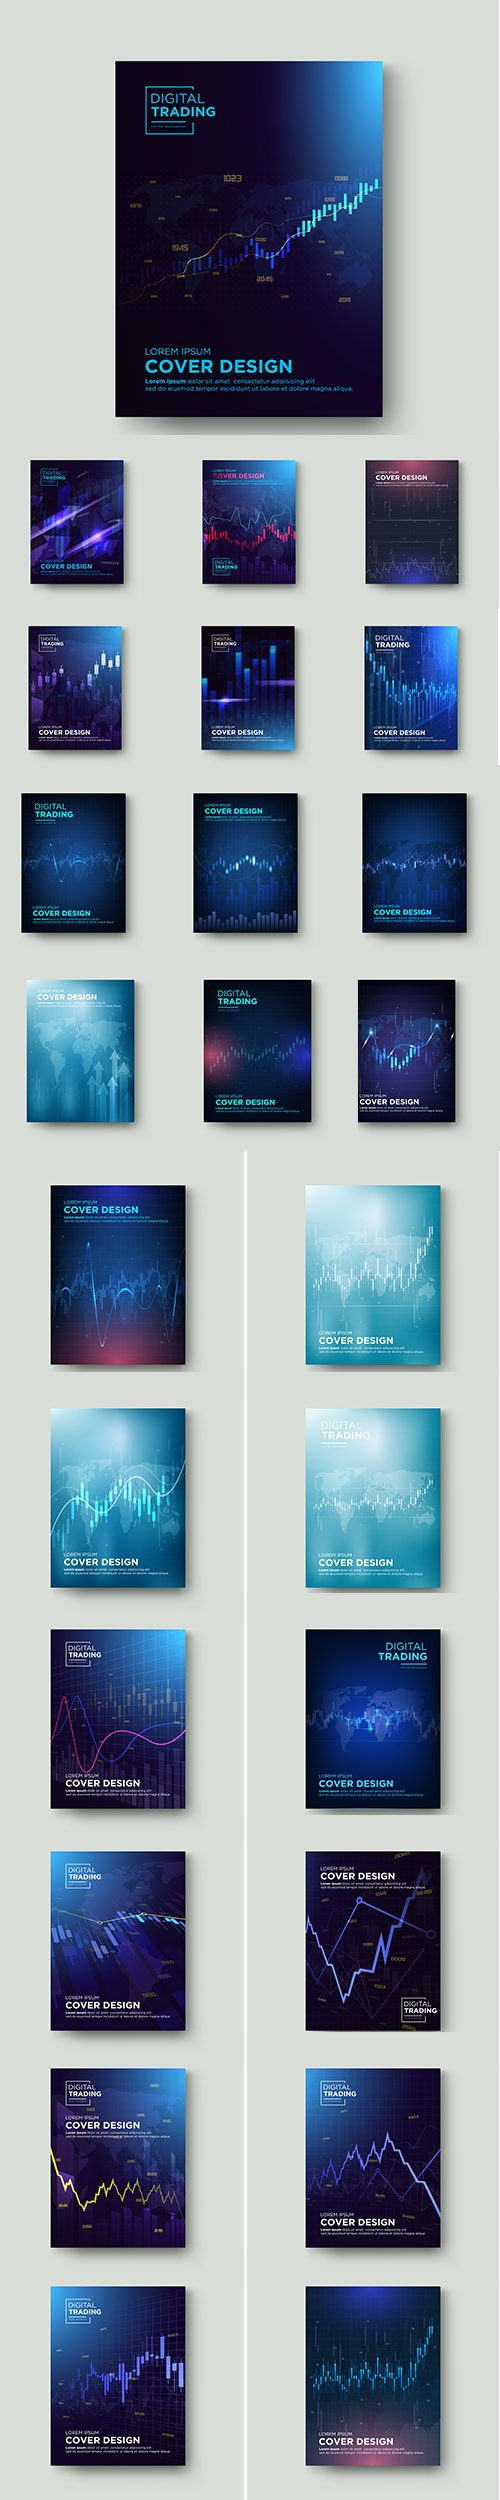 Cover Trading with Graphic Premium Illustrations Set